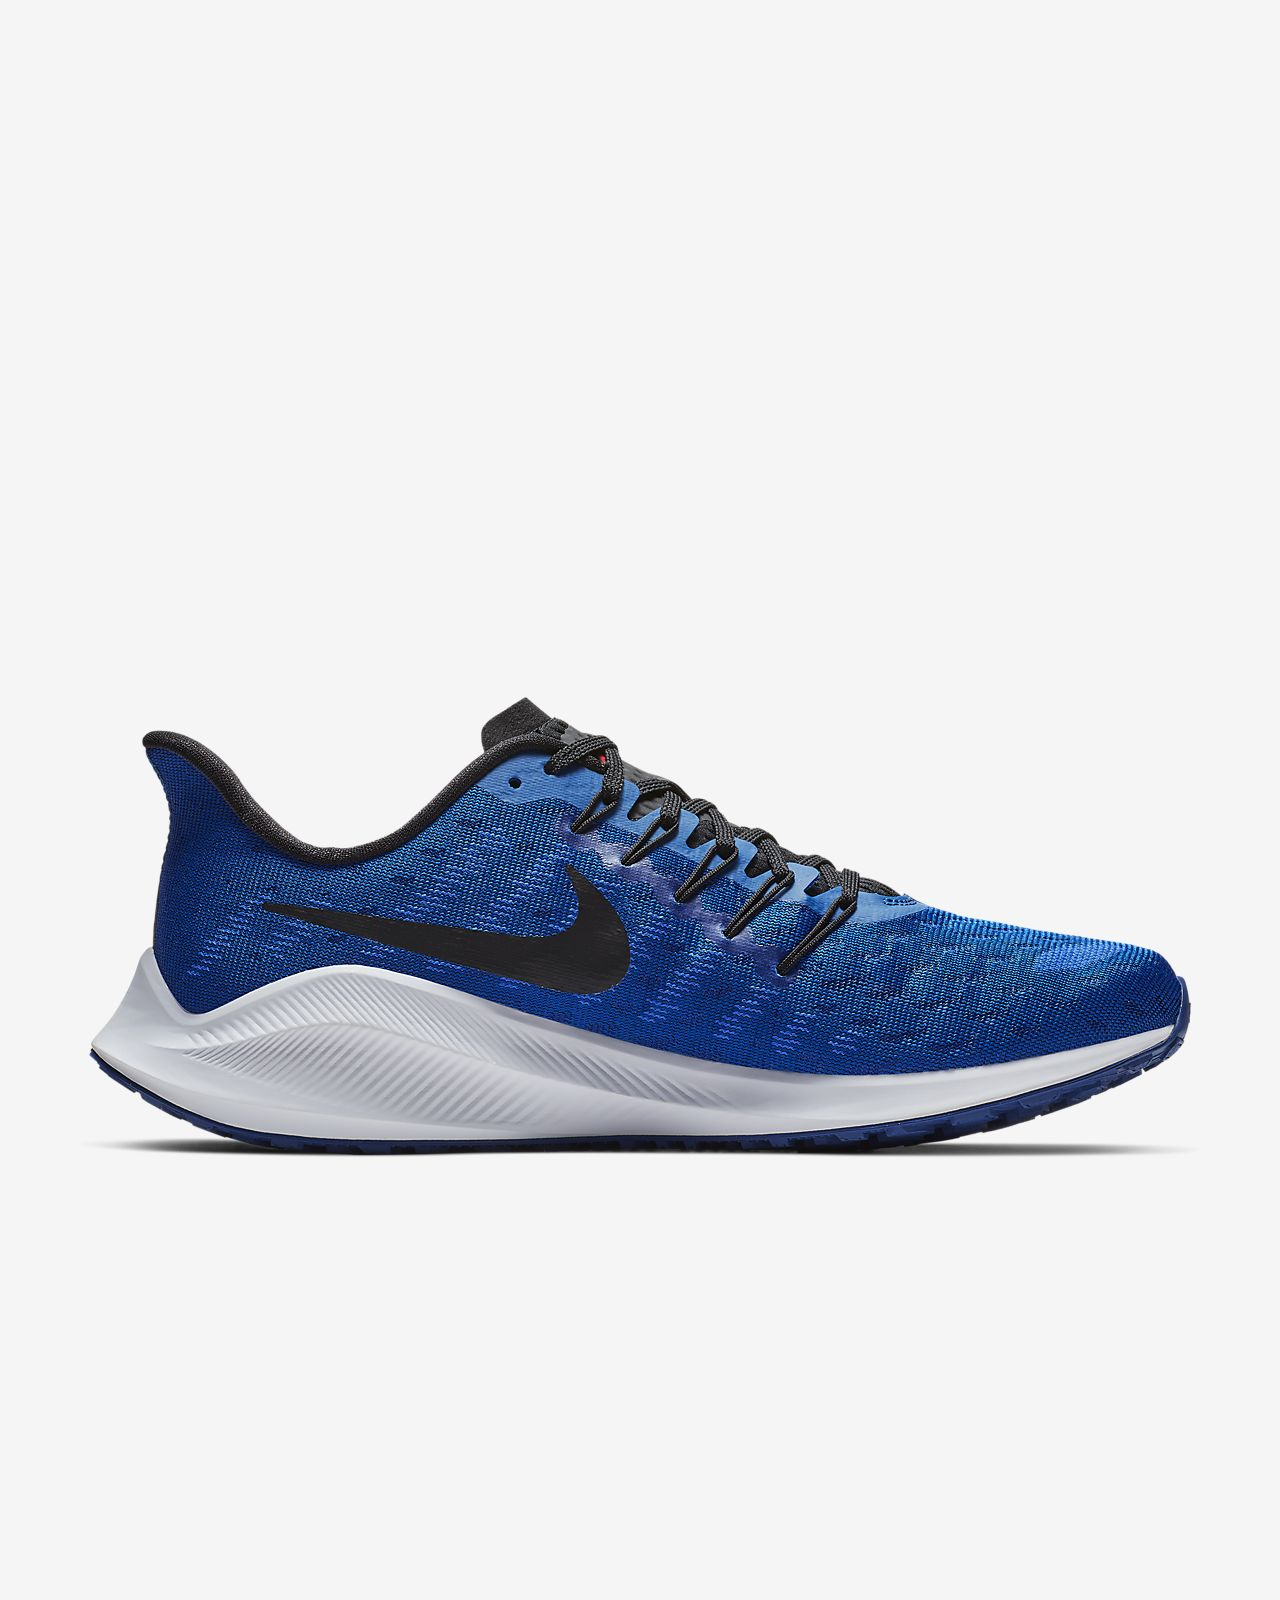 Nike Women Zoom Vomero 9 Blue Sports Shoes Price in India